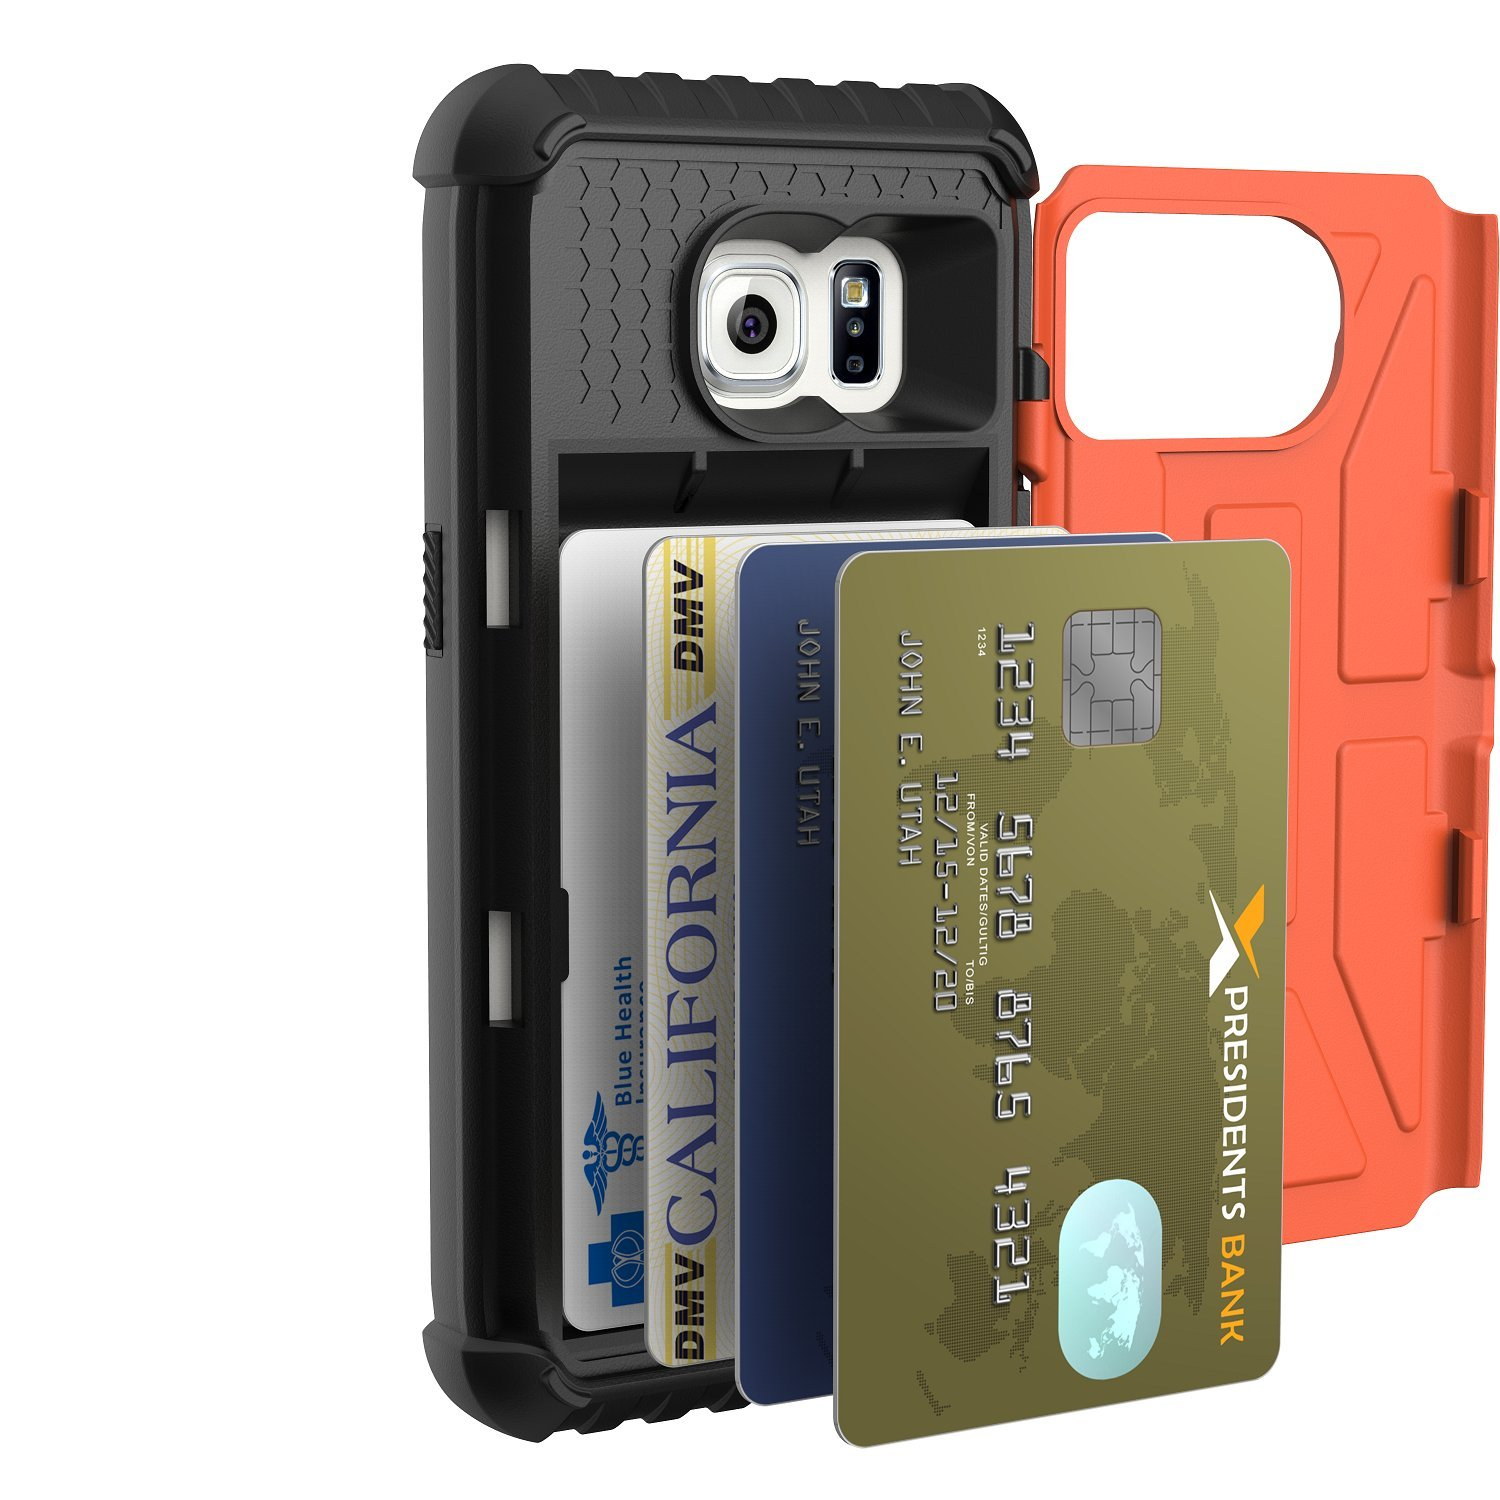 Galaxy s6 cases shop samsung cases online uag urban armor gear - Amazon Com Uag Samsung Galaxy S7 5 1 Inch Screen Trooper Card Case Rust Feather Light Military Drop Tested Phone Case Cell Phones Accessories